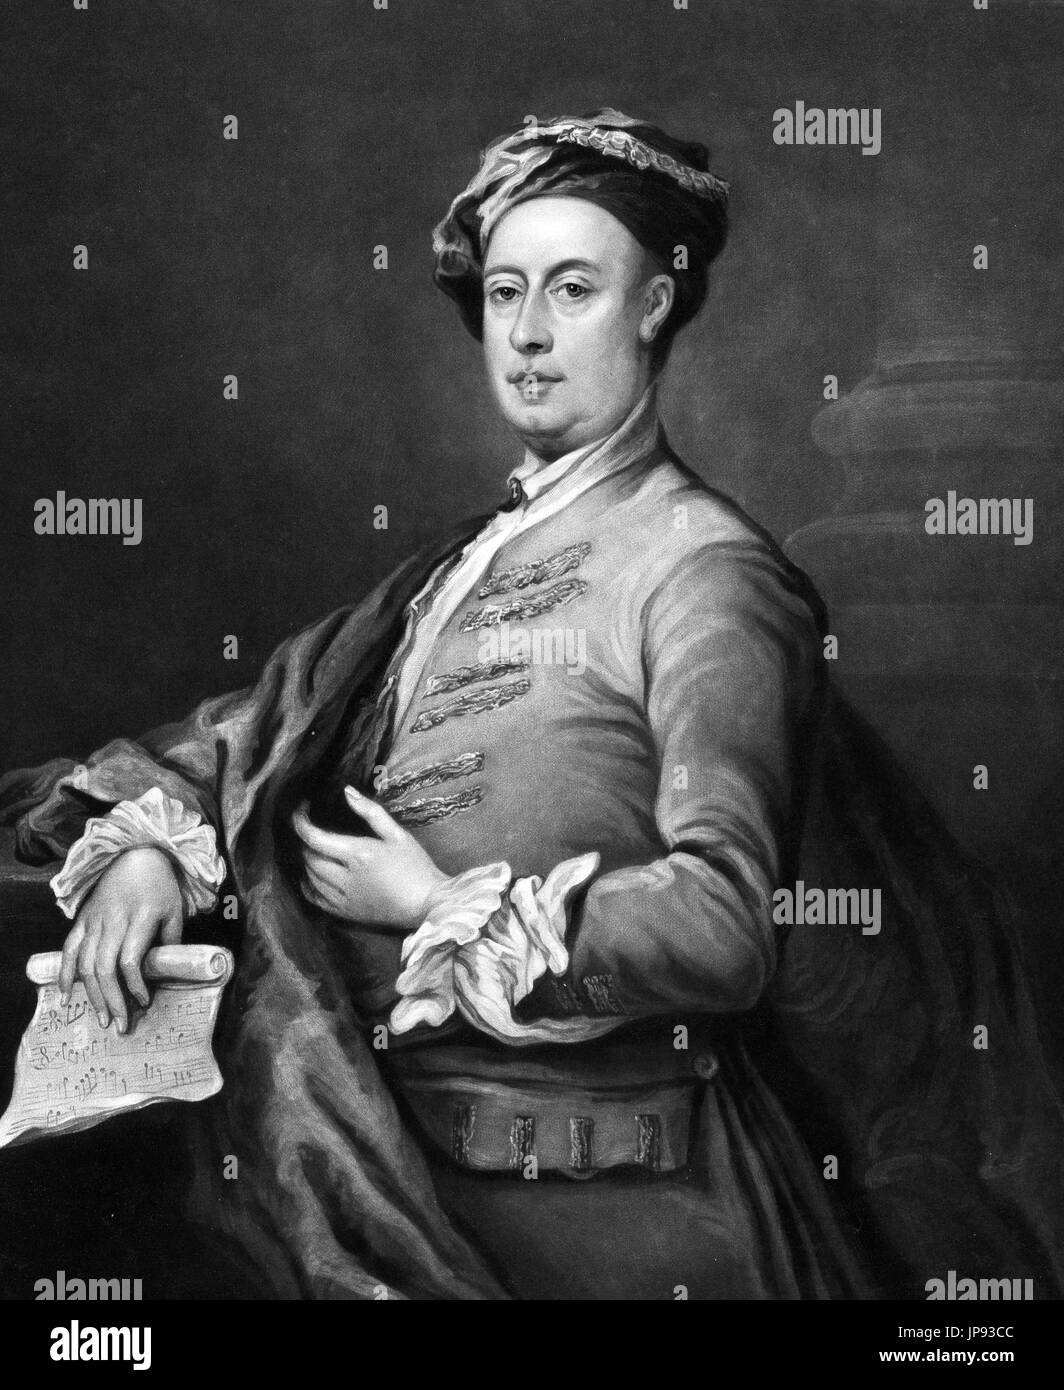 George Frideric (or Frederick) Handel (1685-1759), an 1821 engraving by C Turner from a portrait  by William Hogarth - Stock Image